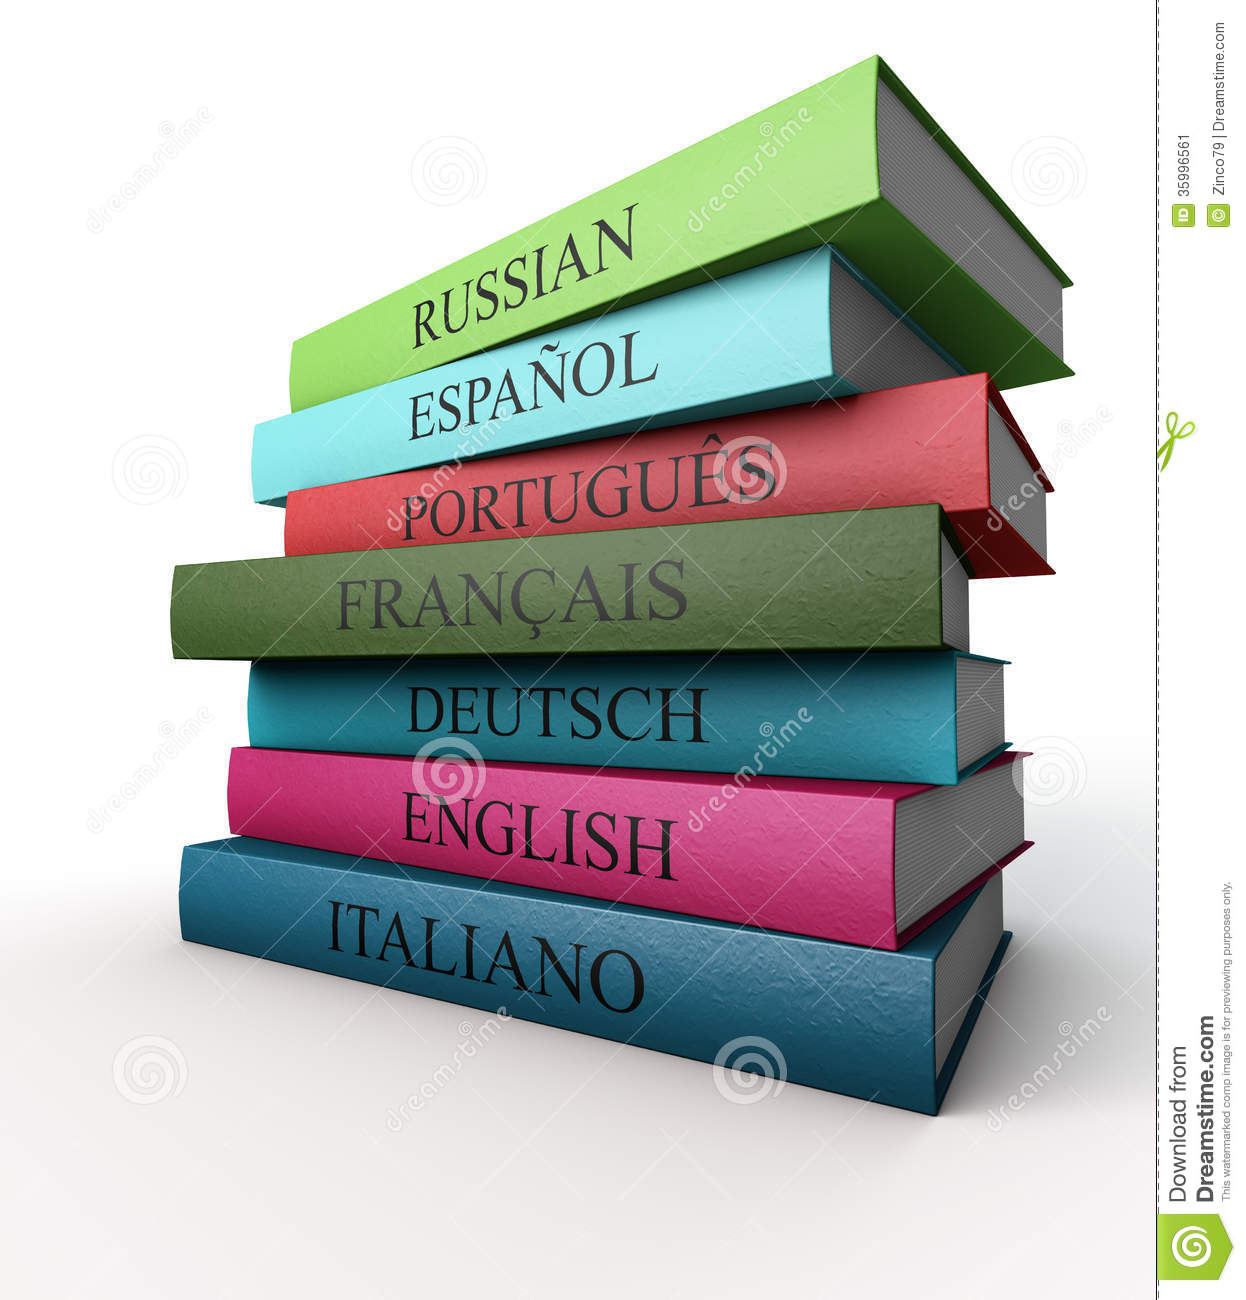 Spanish to english - Seven Dictionaries Each Other Italian French Spanish Portugu